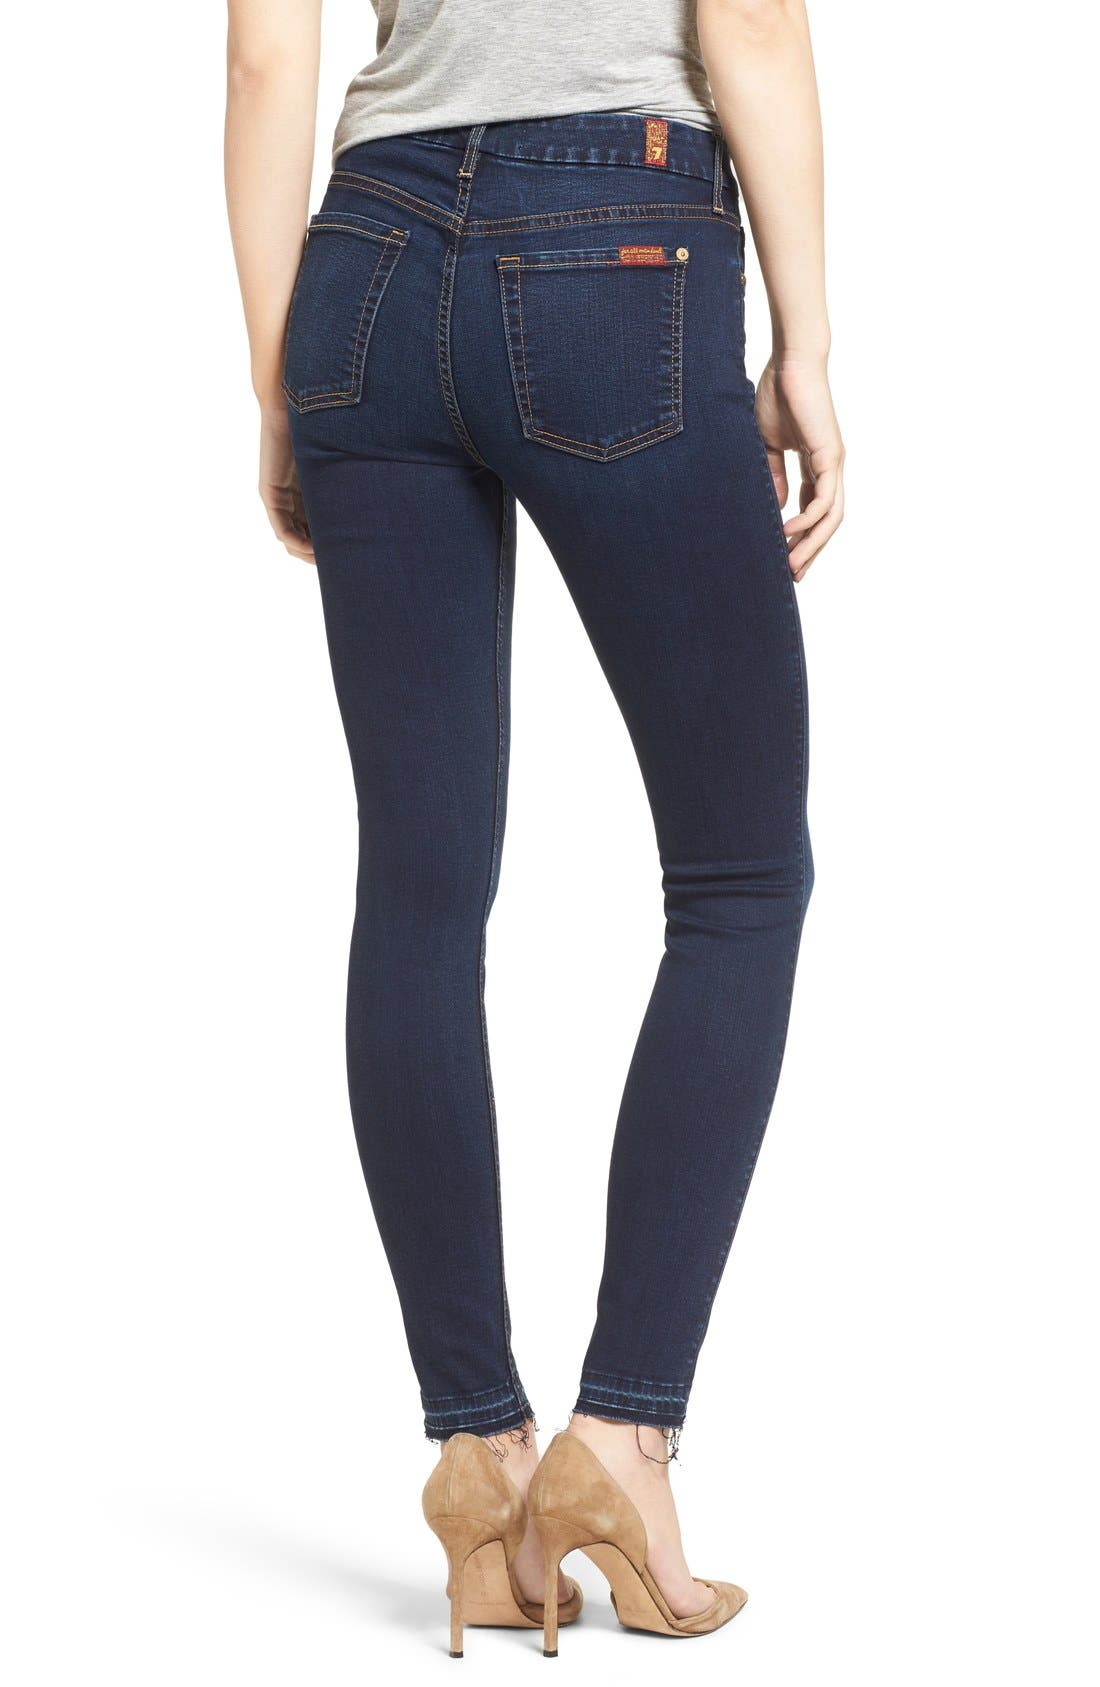 b(air) Ankle Skinny Jeans,                             Alternate thumbnail 2, color,                             400